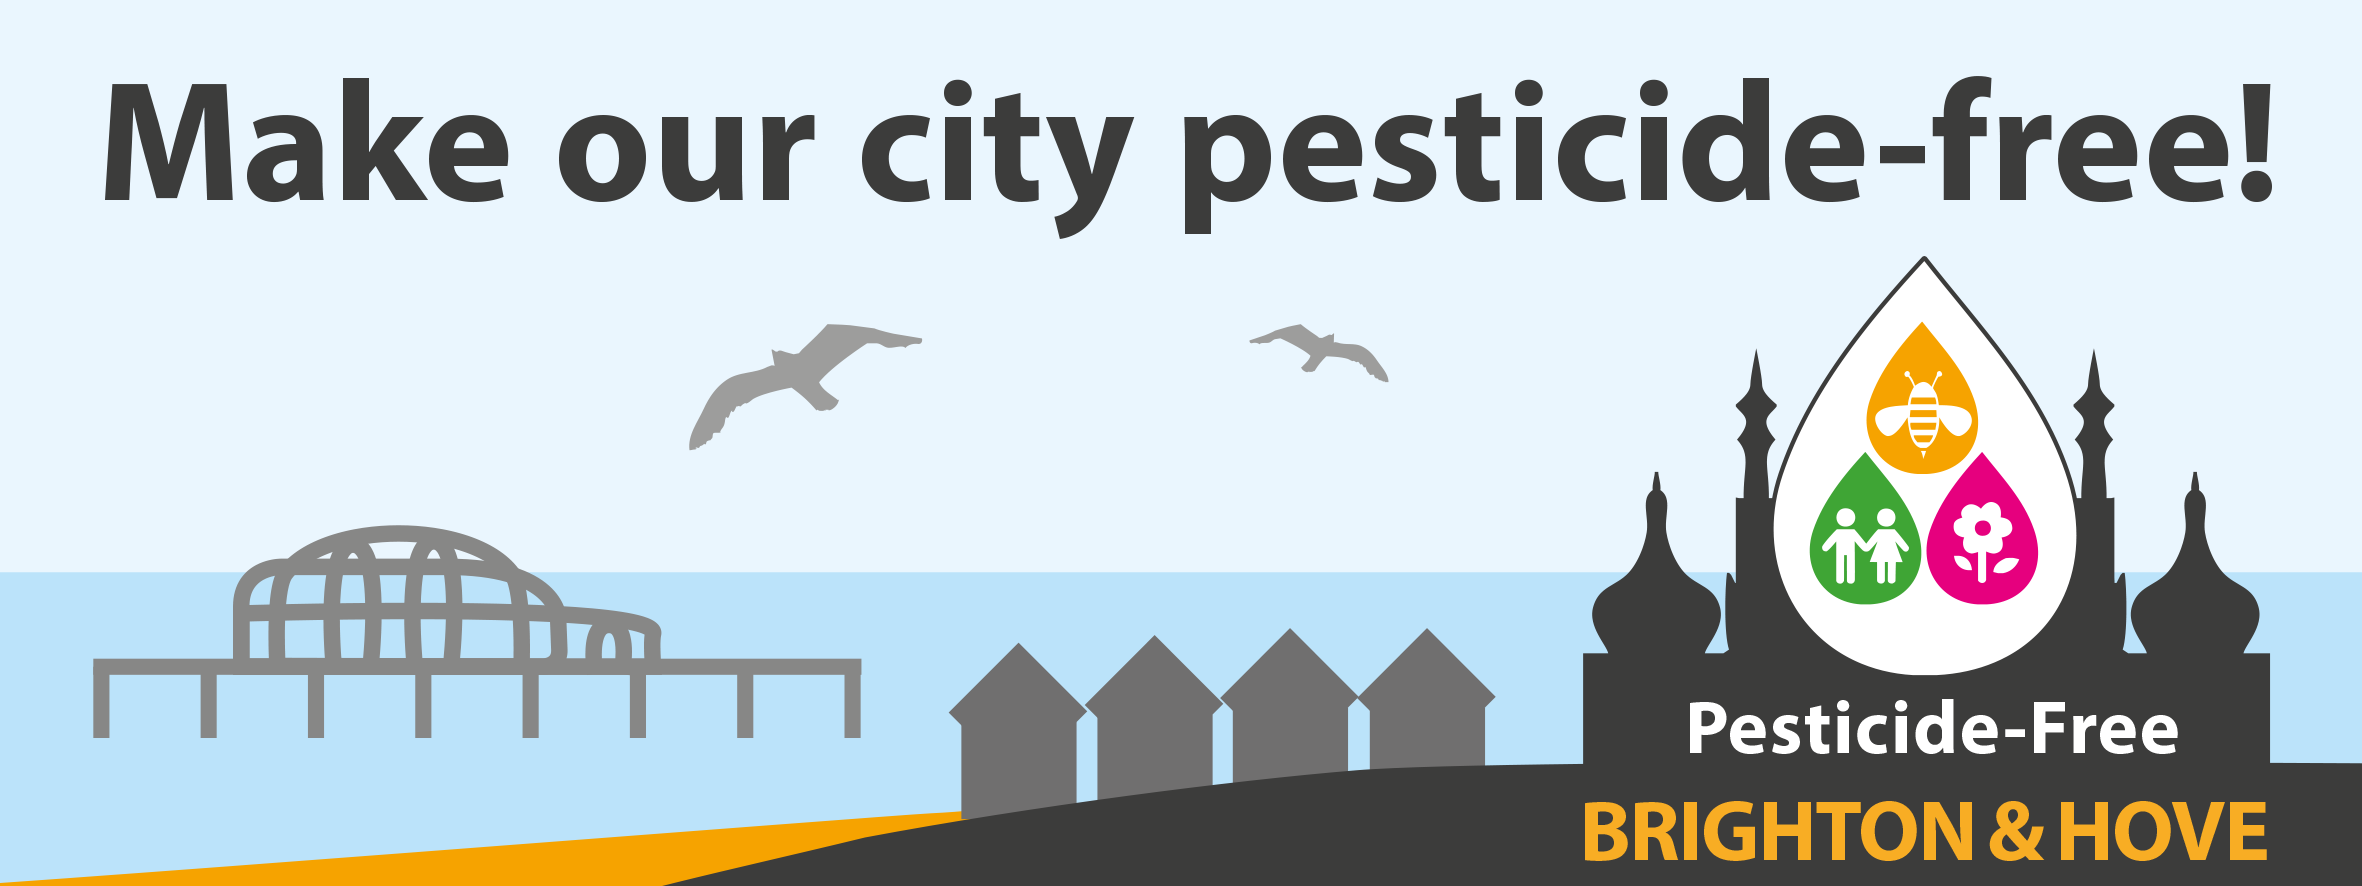 Make Brighton and Hove pesticide-free